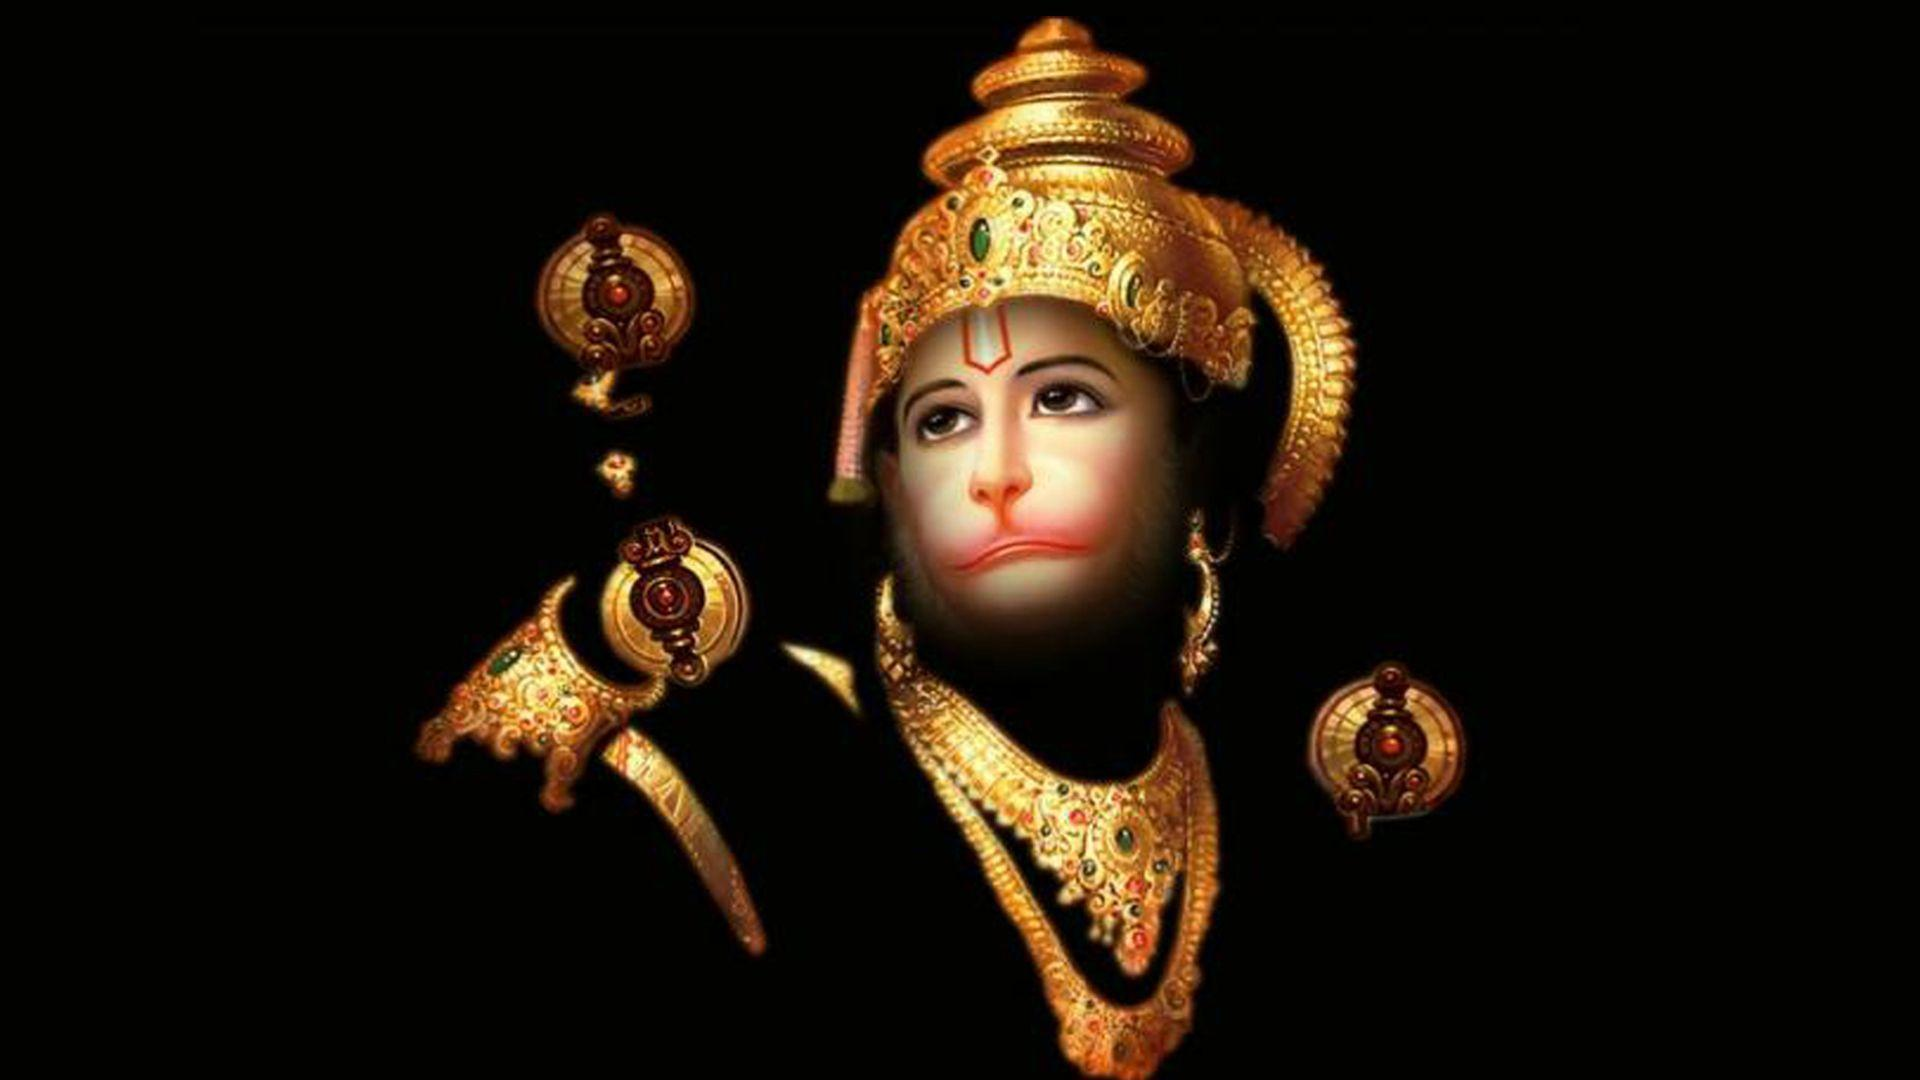 Lord Hanuman Wallpapers Wallpaper Cave